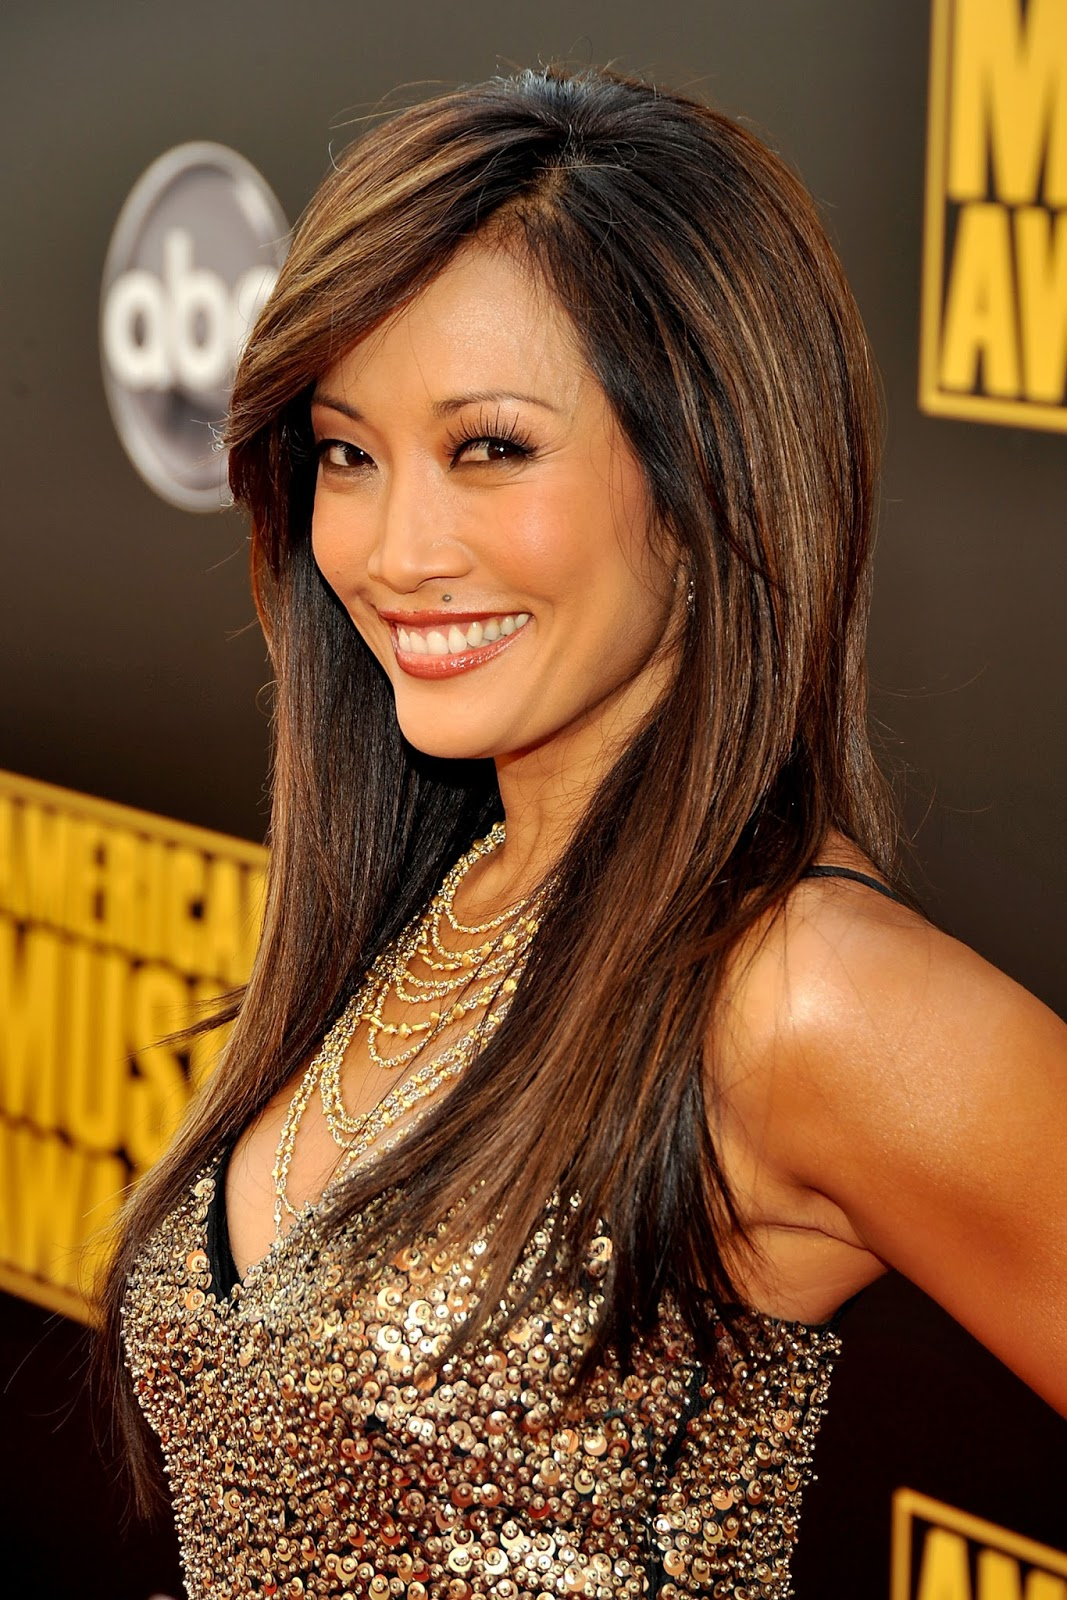 Carrie Ann Inaba Hot HQ Photos at 2008 American Music